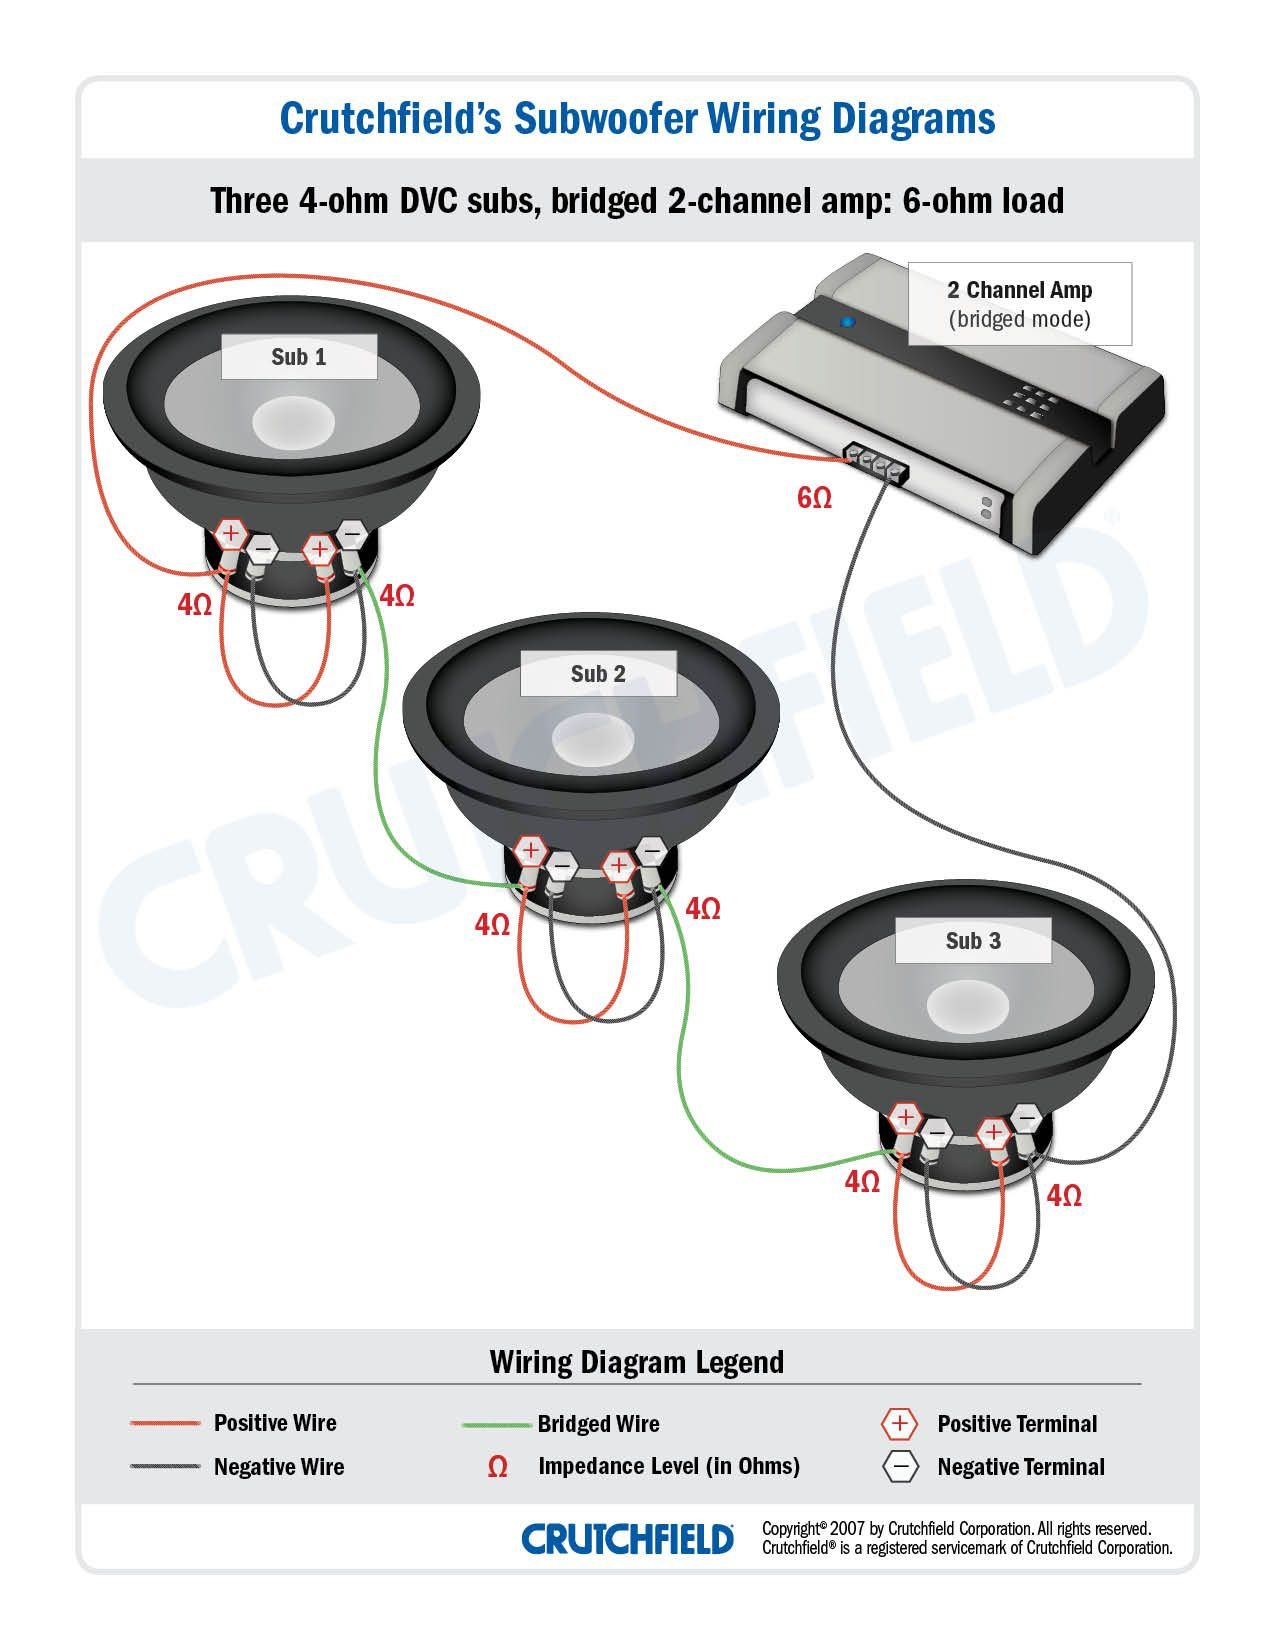 top 10 subwoofer wiring diagram free download 3 dvc 4 ohm 2 ch top 10 subwoofer wiring diagram free download wiring diagram [ 1275 x 1650 Pixel ]